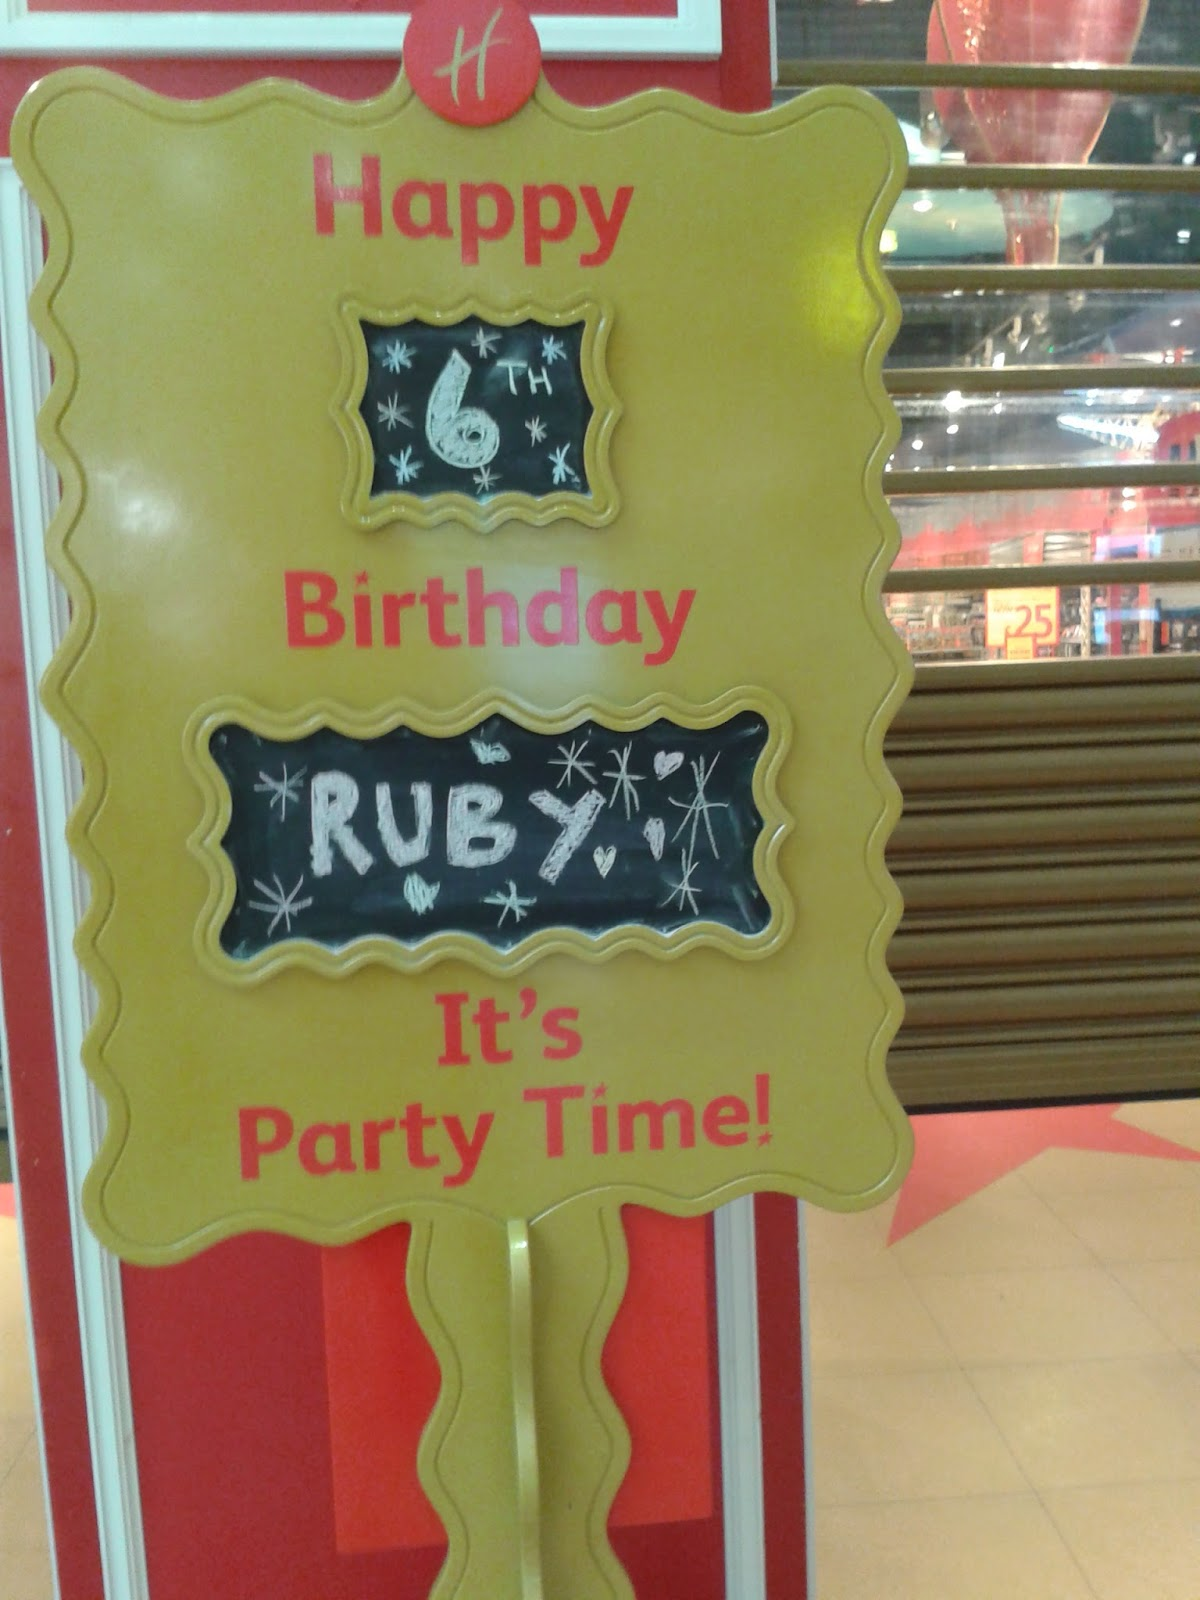 Happy Birthday sign outside Hamleys Toy Store Cardiff